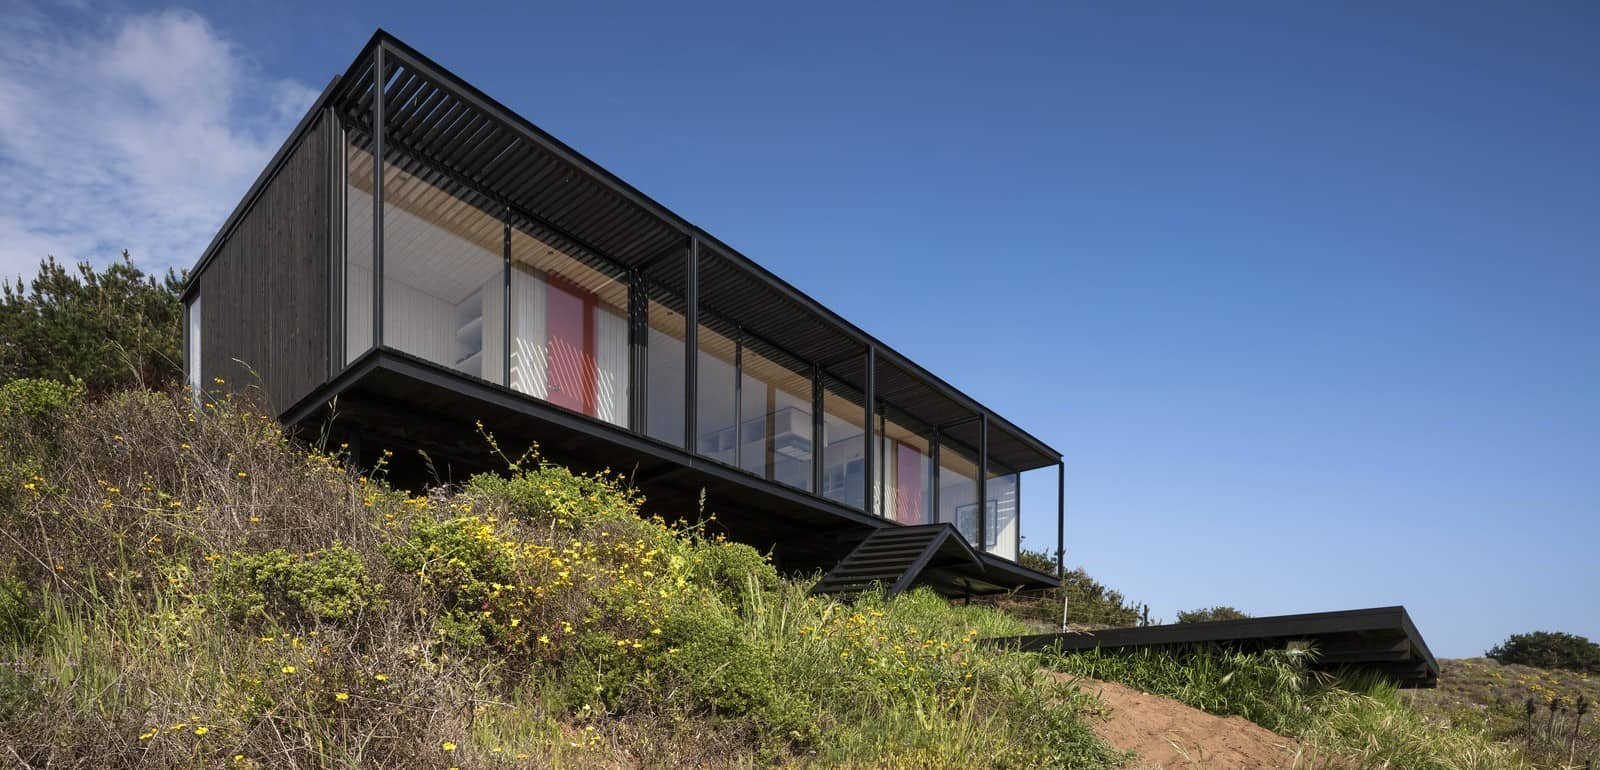 Remote Transportable Modular House in Chile by Felipe Assadi 3